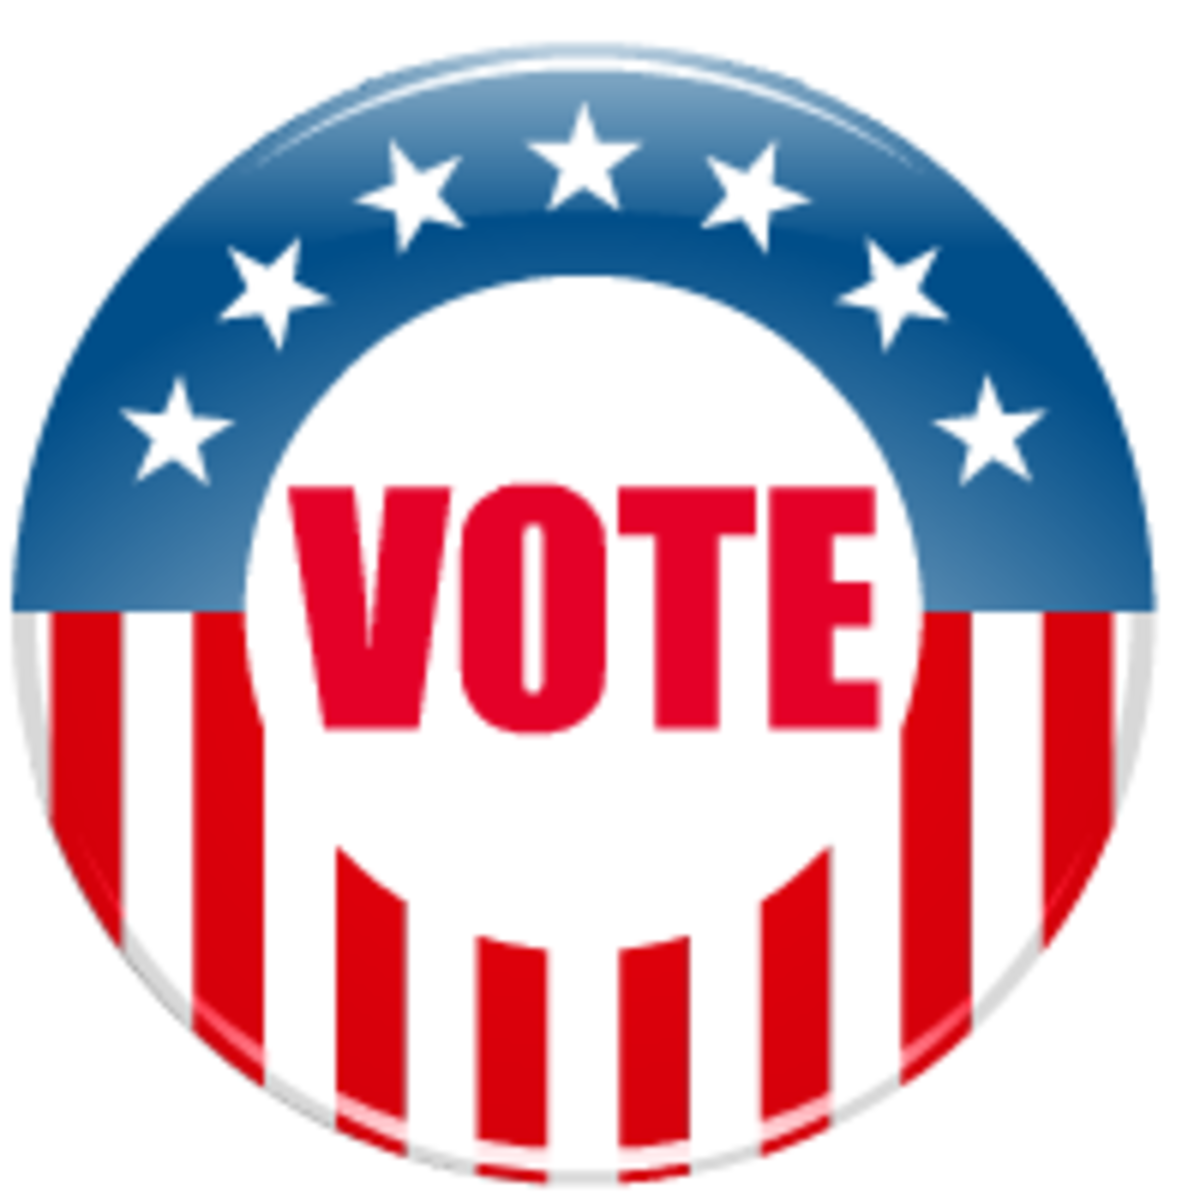 Election clip art: vote button